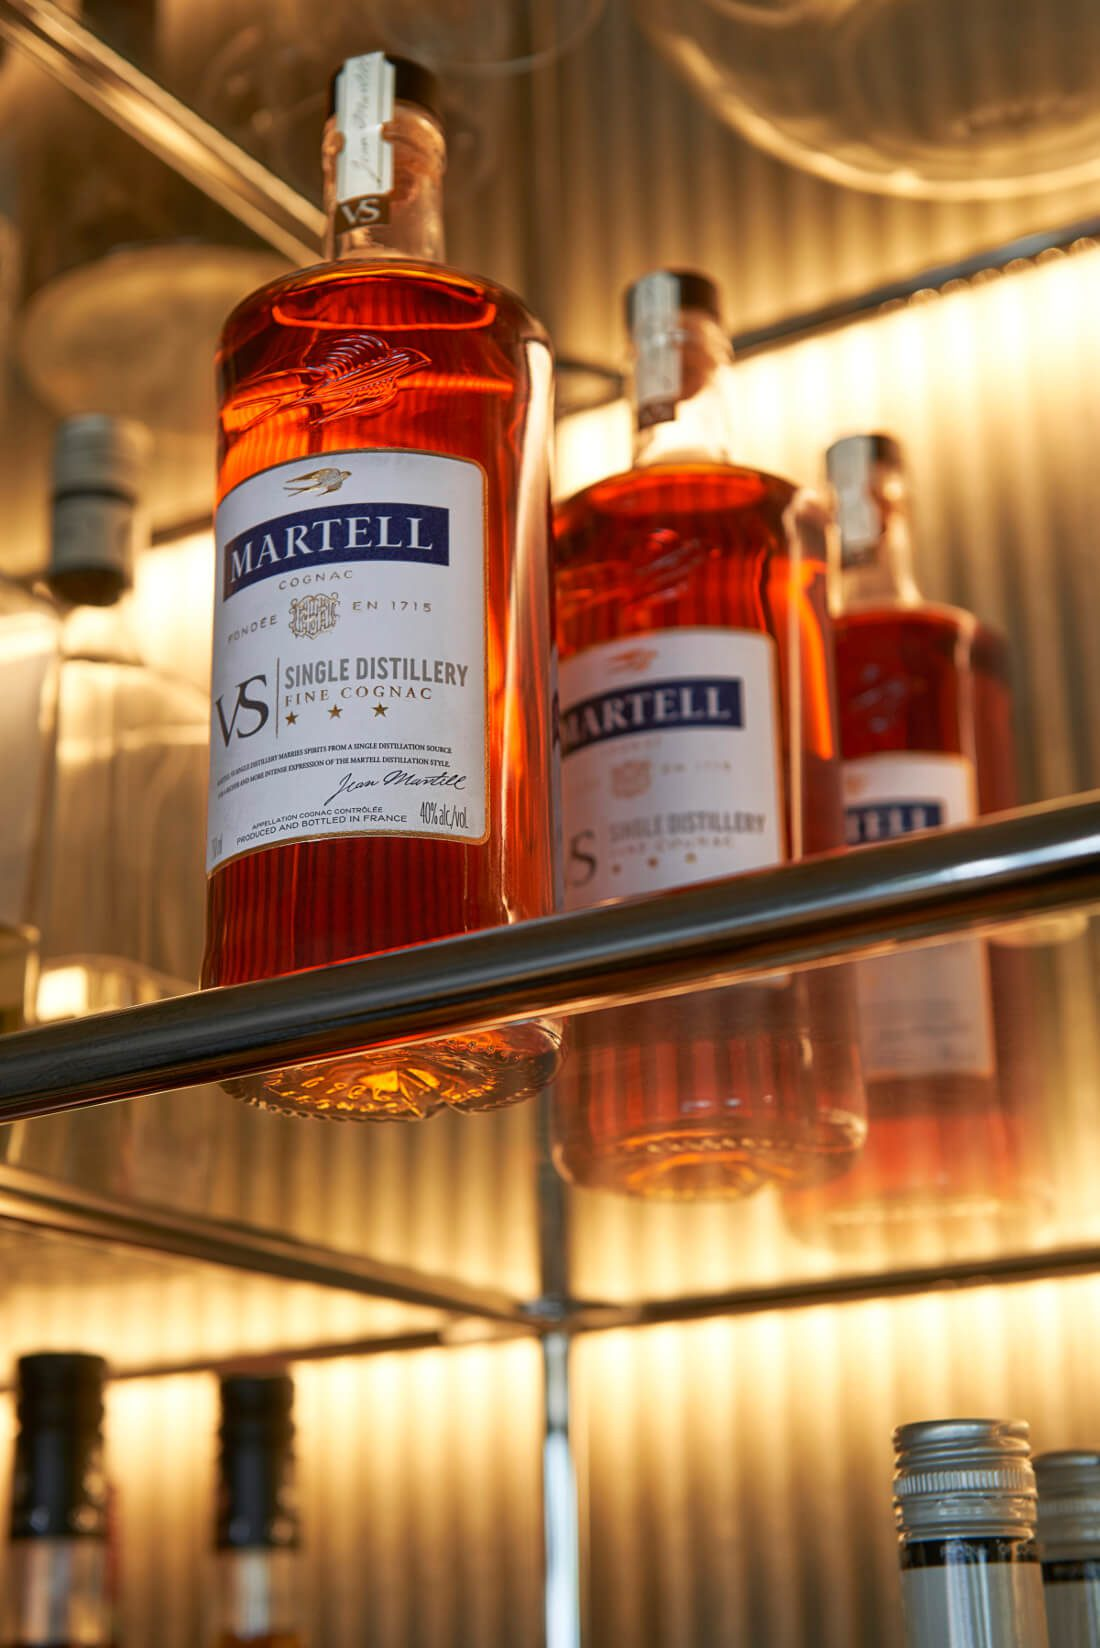 martell-vs-single-distillery-digital-picture-raw-visual-3